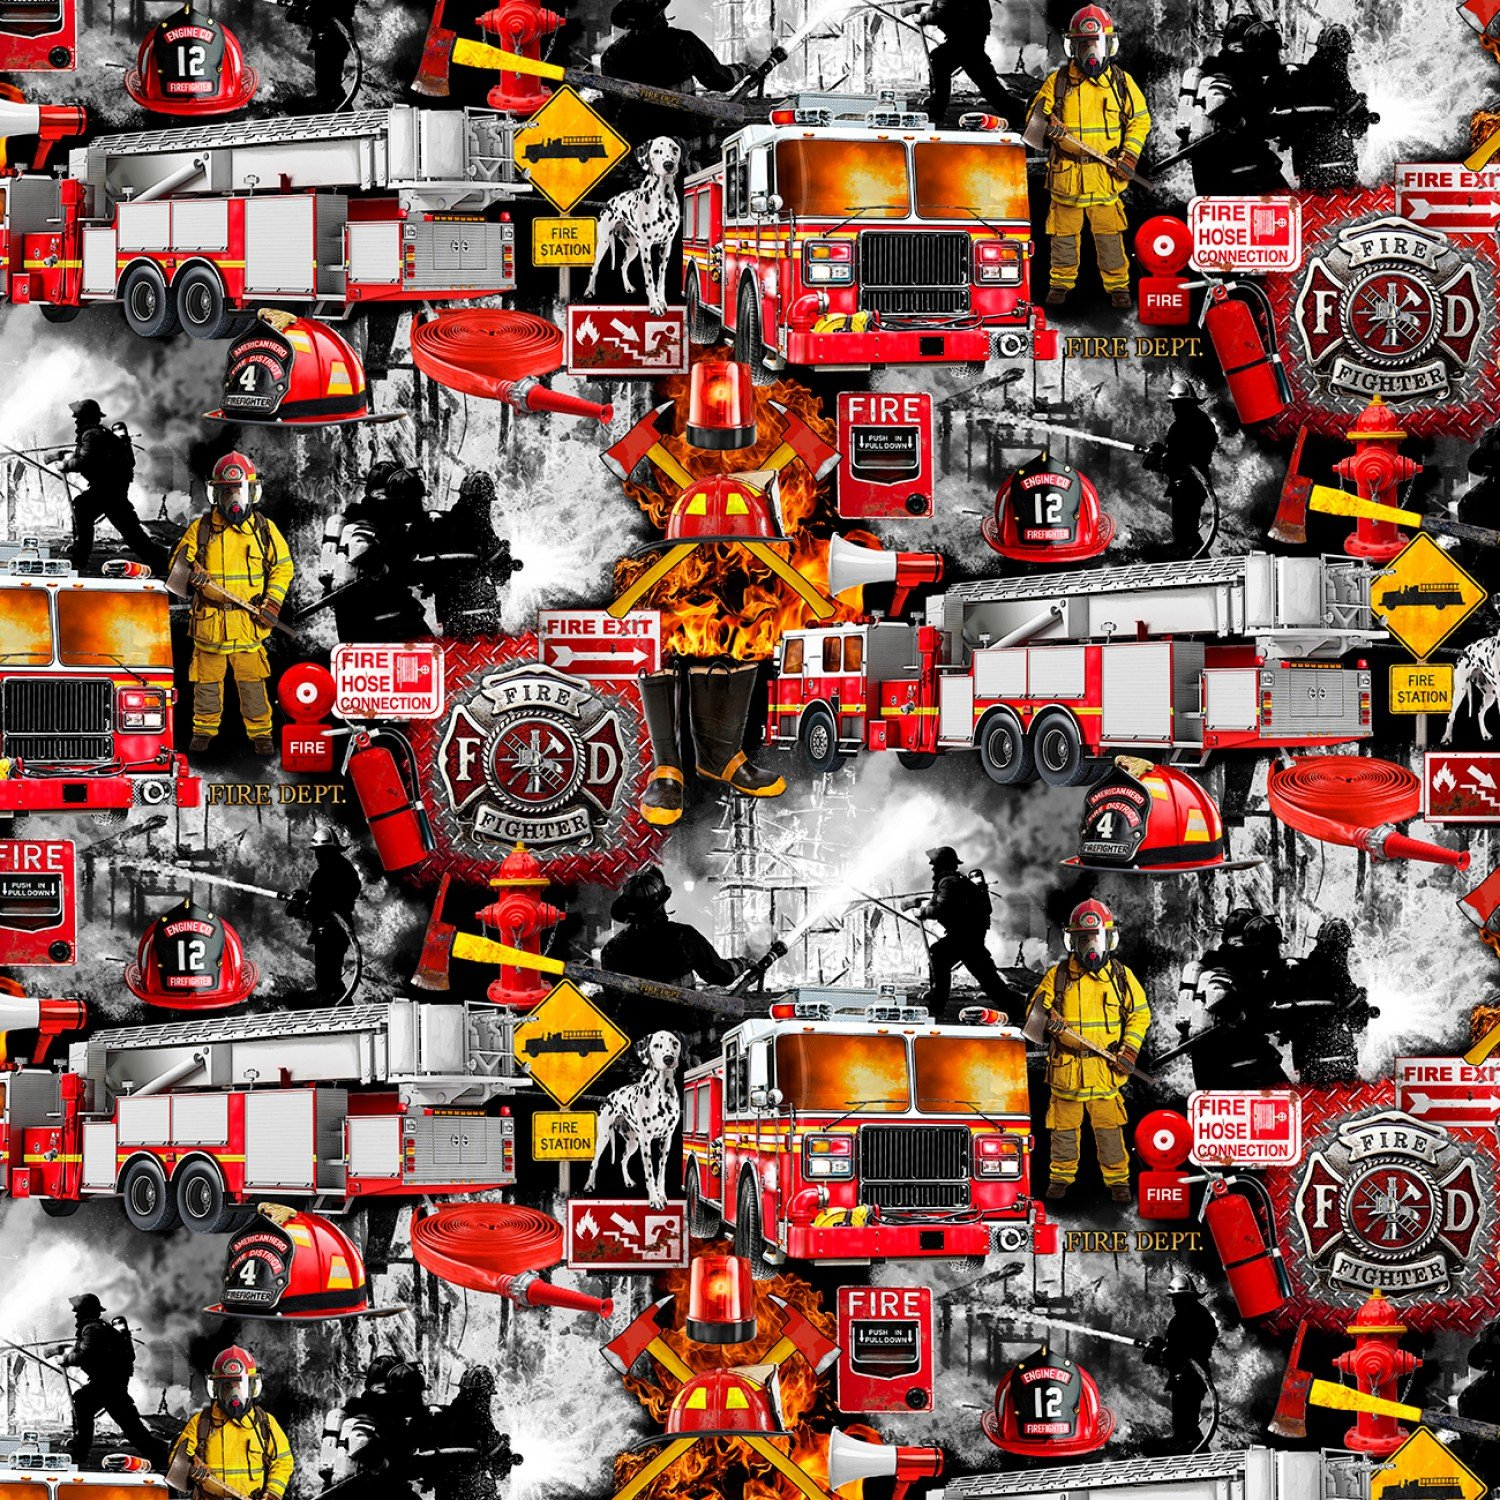 FIRE-C7731-BLACK Firefighter Patchwork